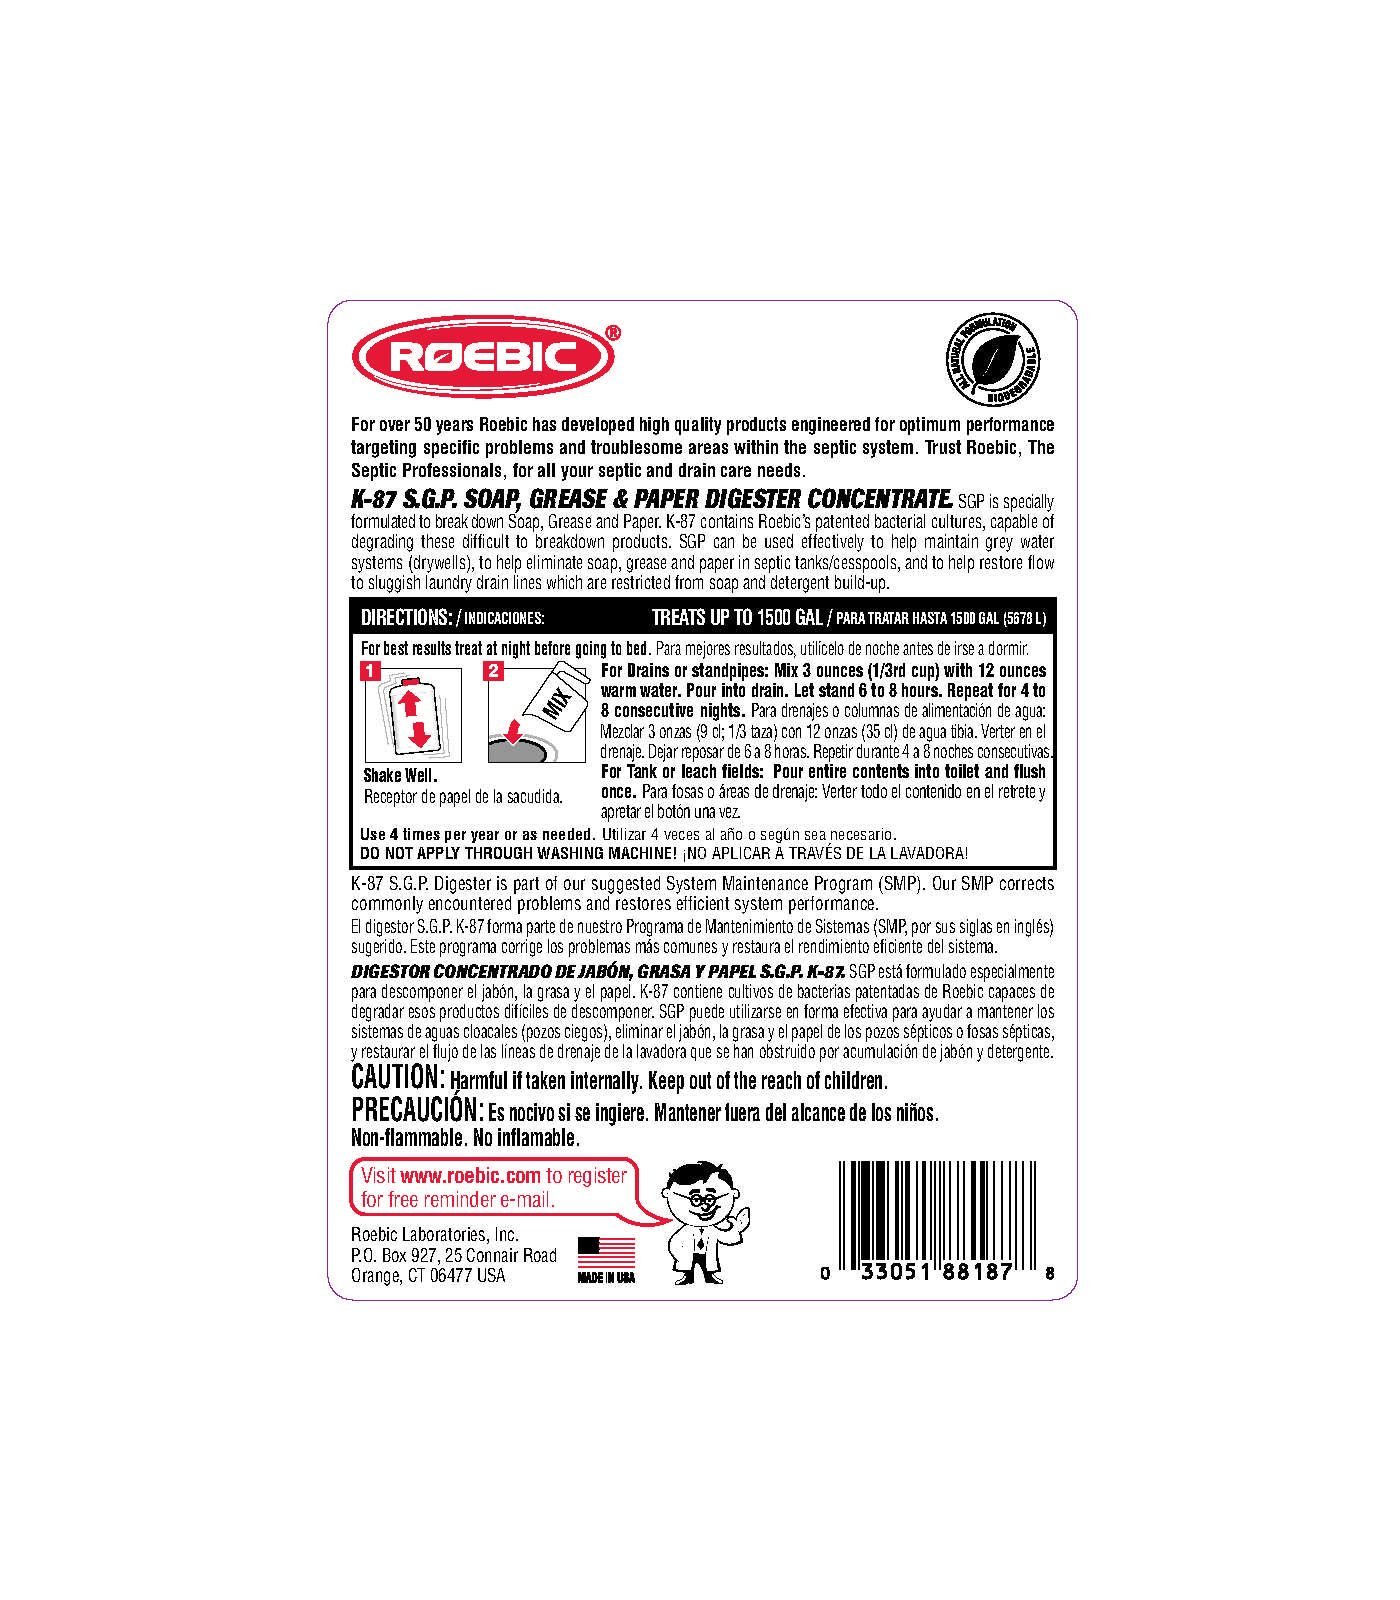 Roebic K-87-Q-C1500 SGP 32-Ounce Soap,Grease And Paper Digester Concentrate by Roebic (Image #2)